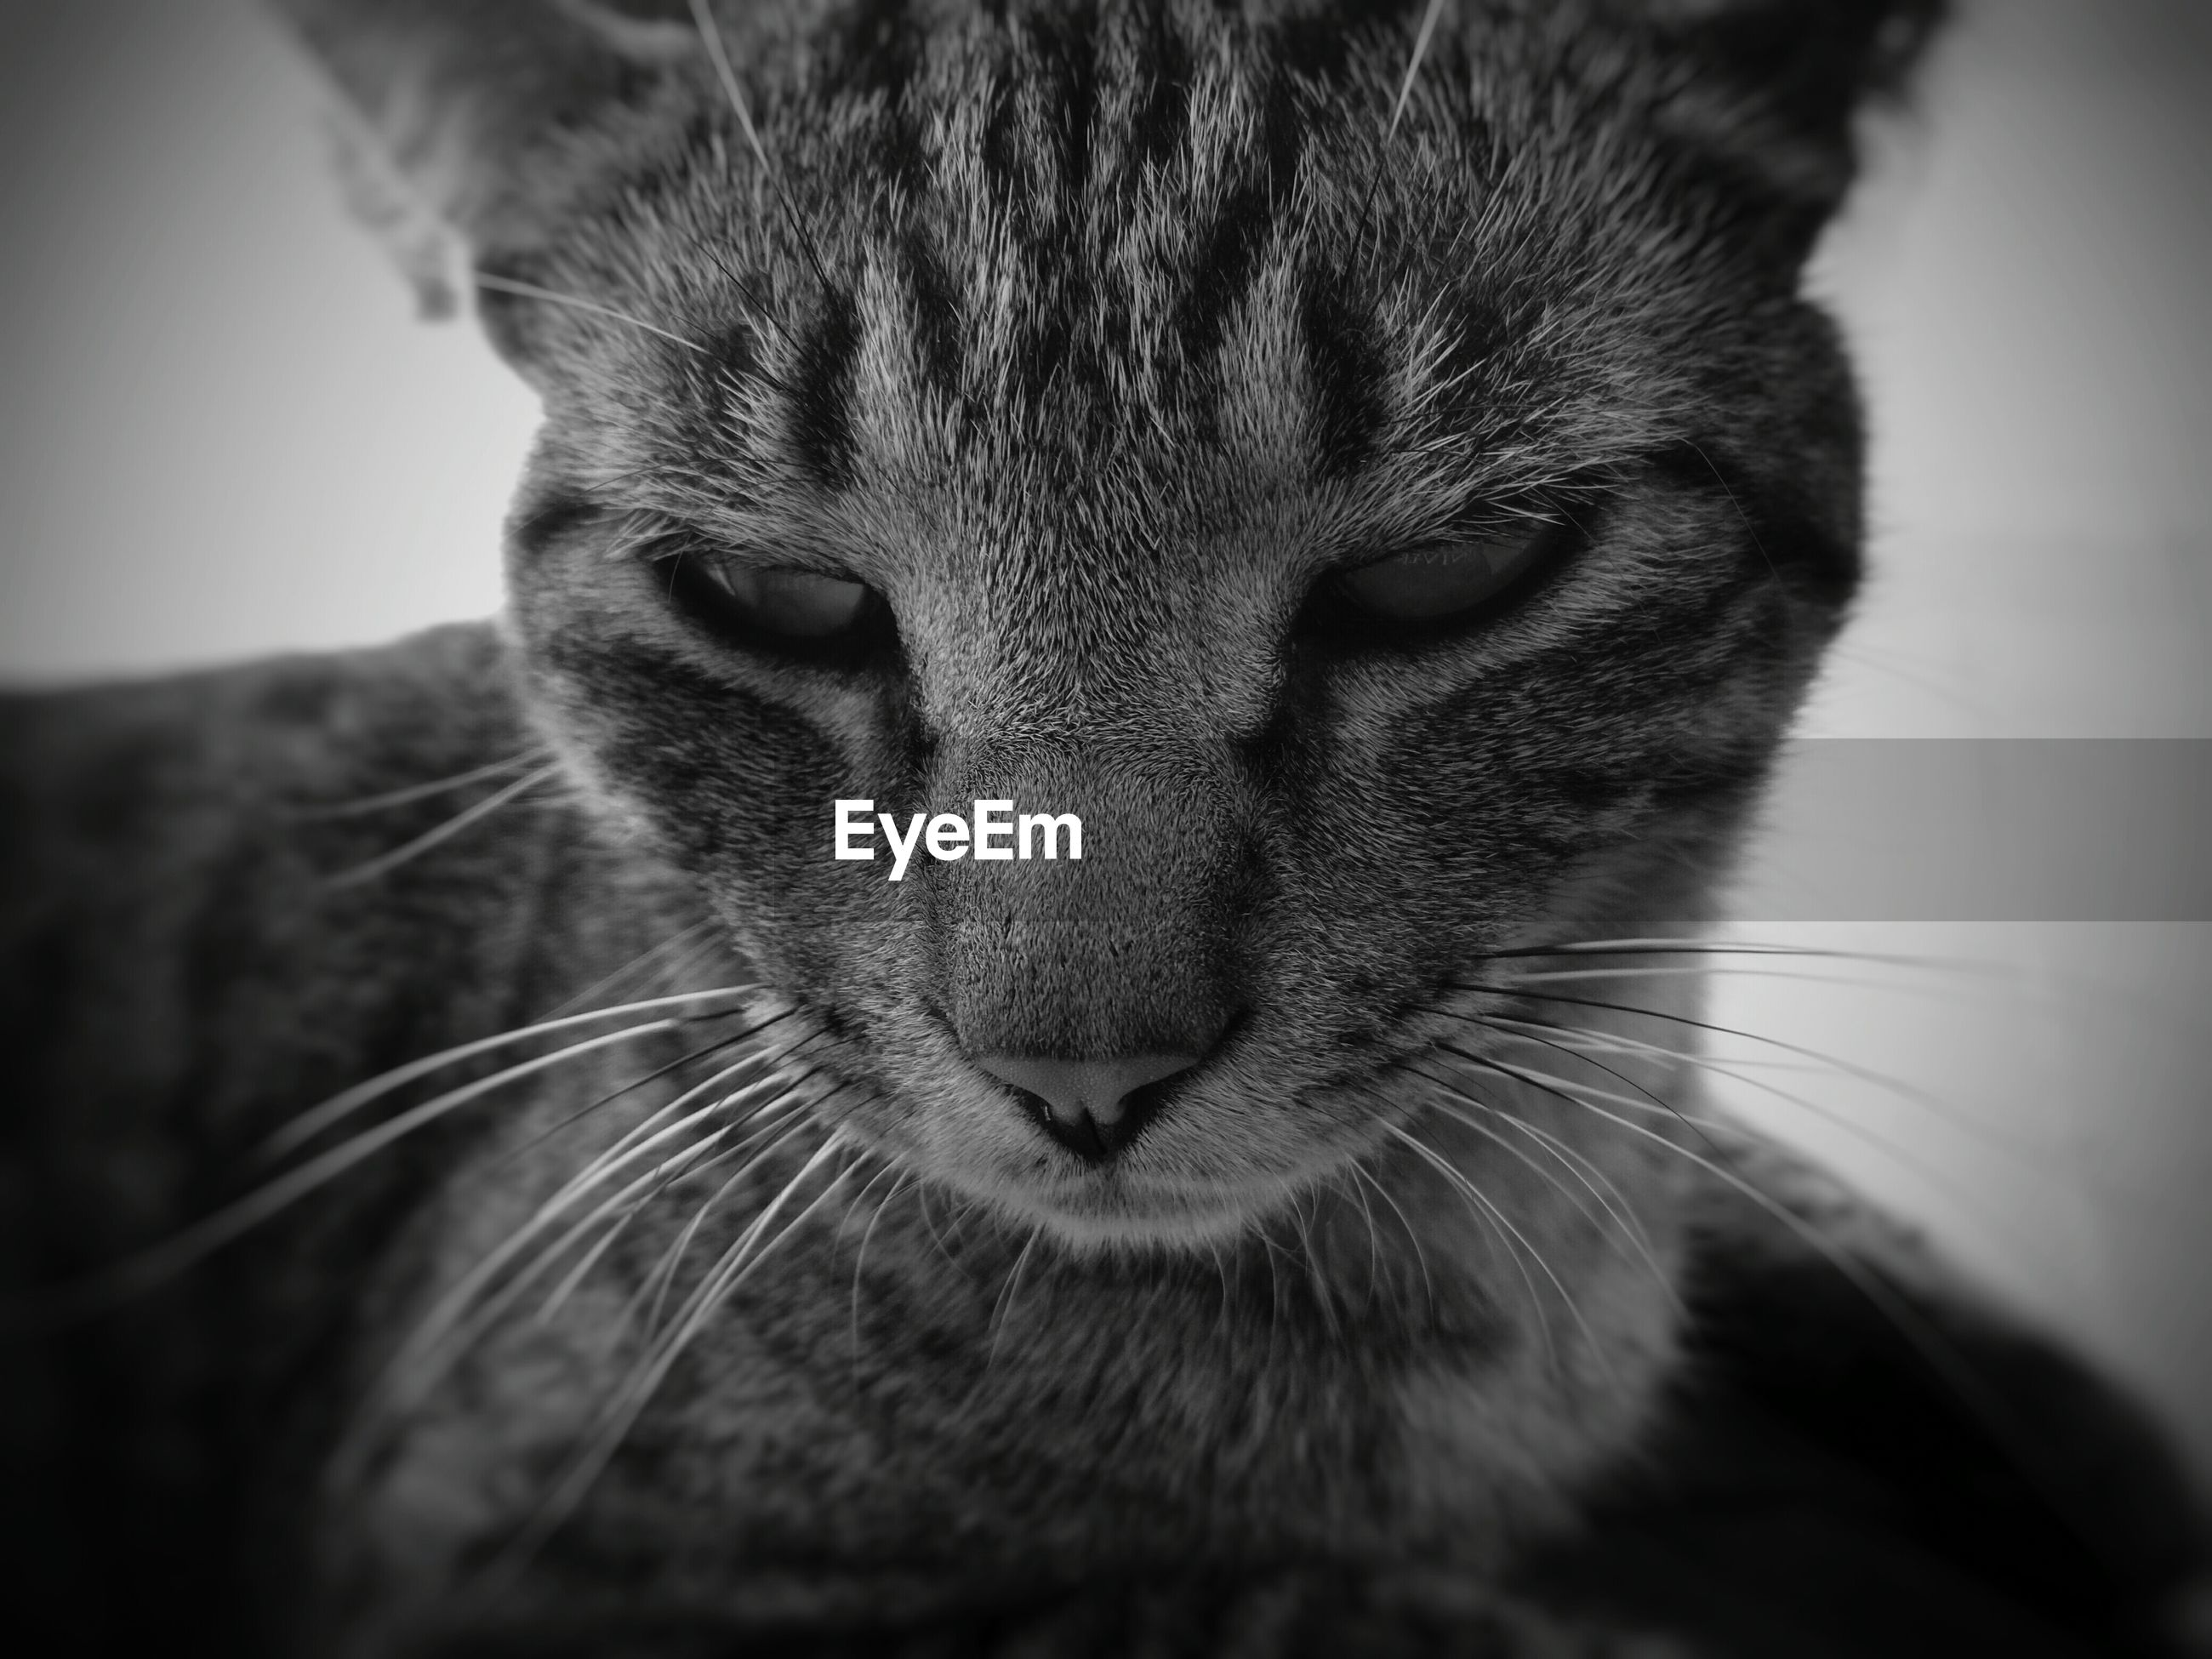 one animal, animal themes, mammal, domestic animals, animal head, close-up, pets, whisker, animal body part, domestic cat, feline, portrait, cat, looking at camera, animal eye, focus on foreground, snout, front view, alertness